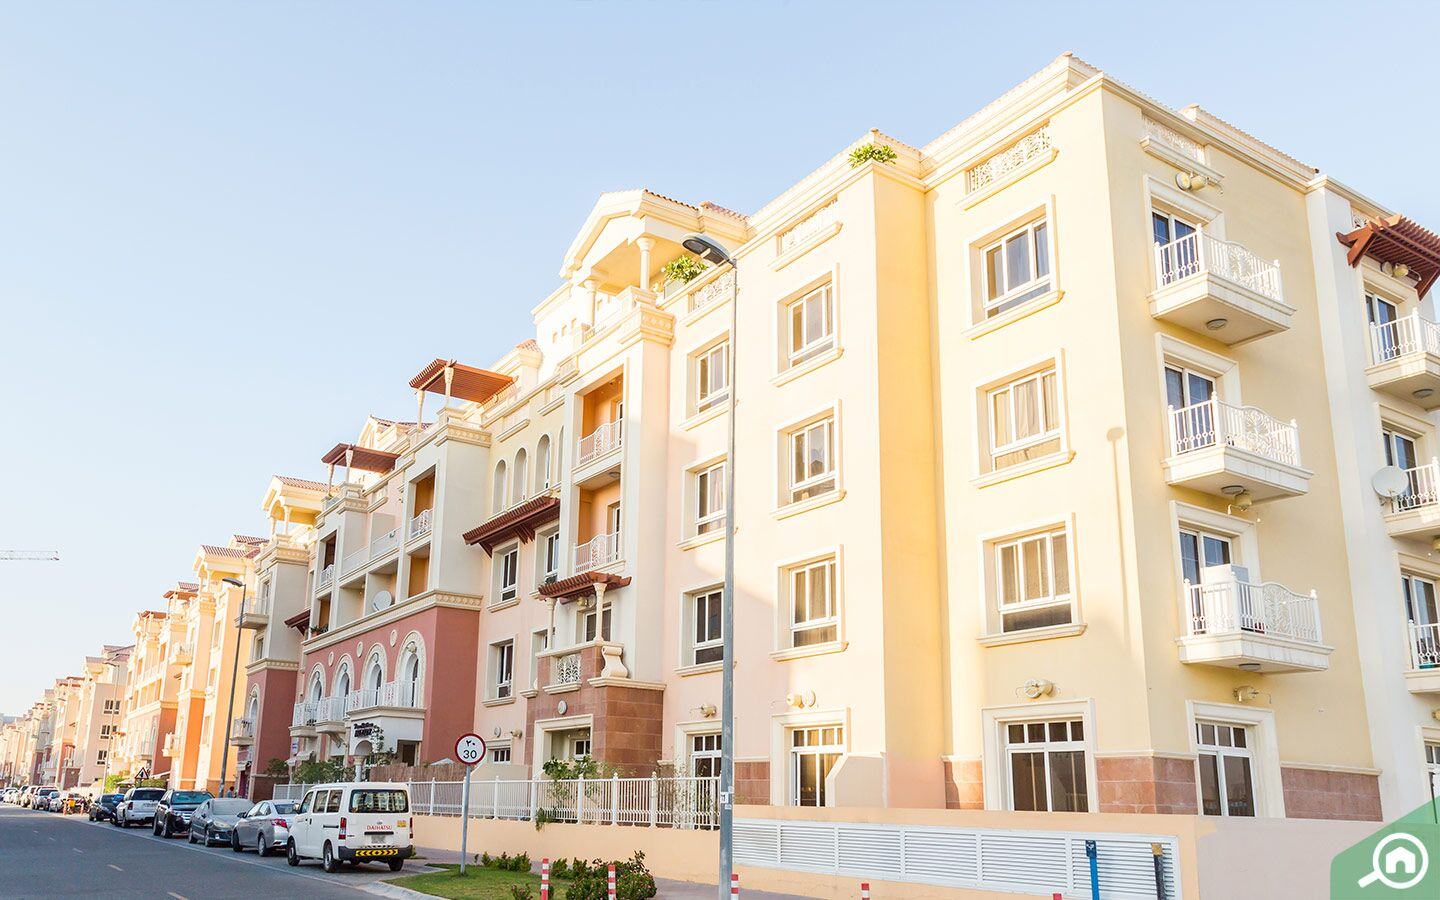 Jumeirah Village Circle apartment buildings, which have freehold flats in Dubai